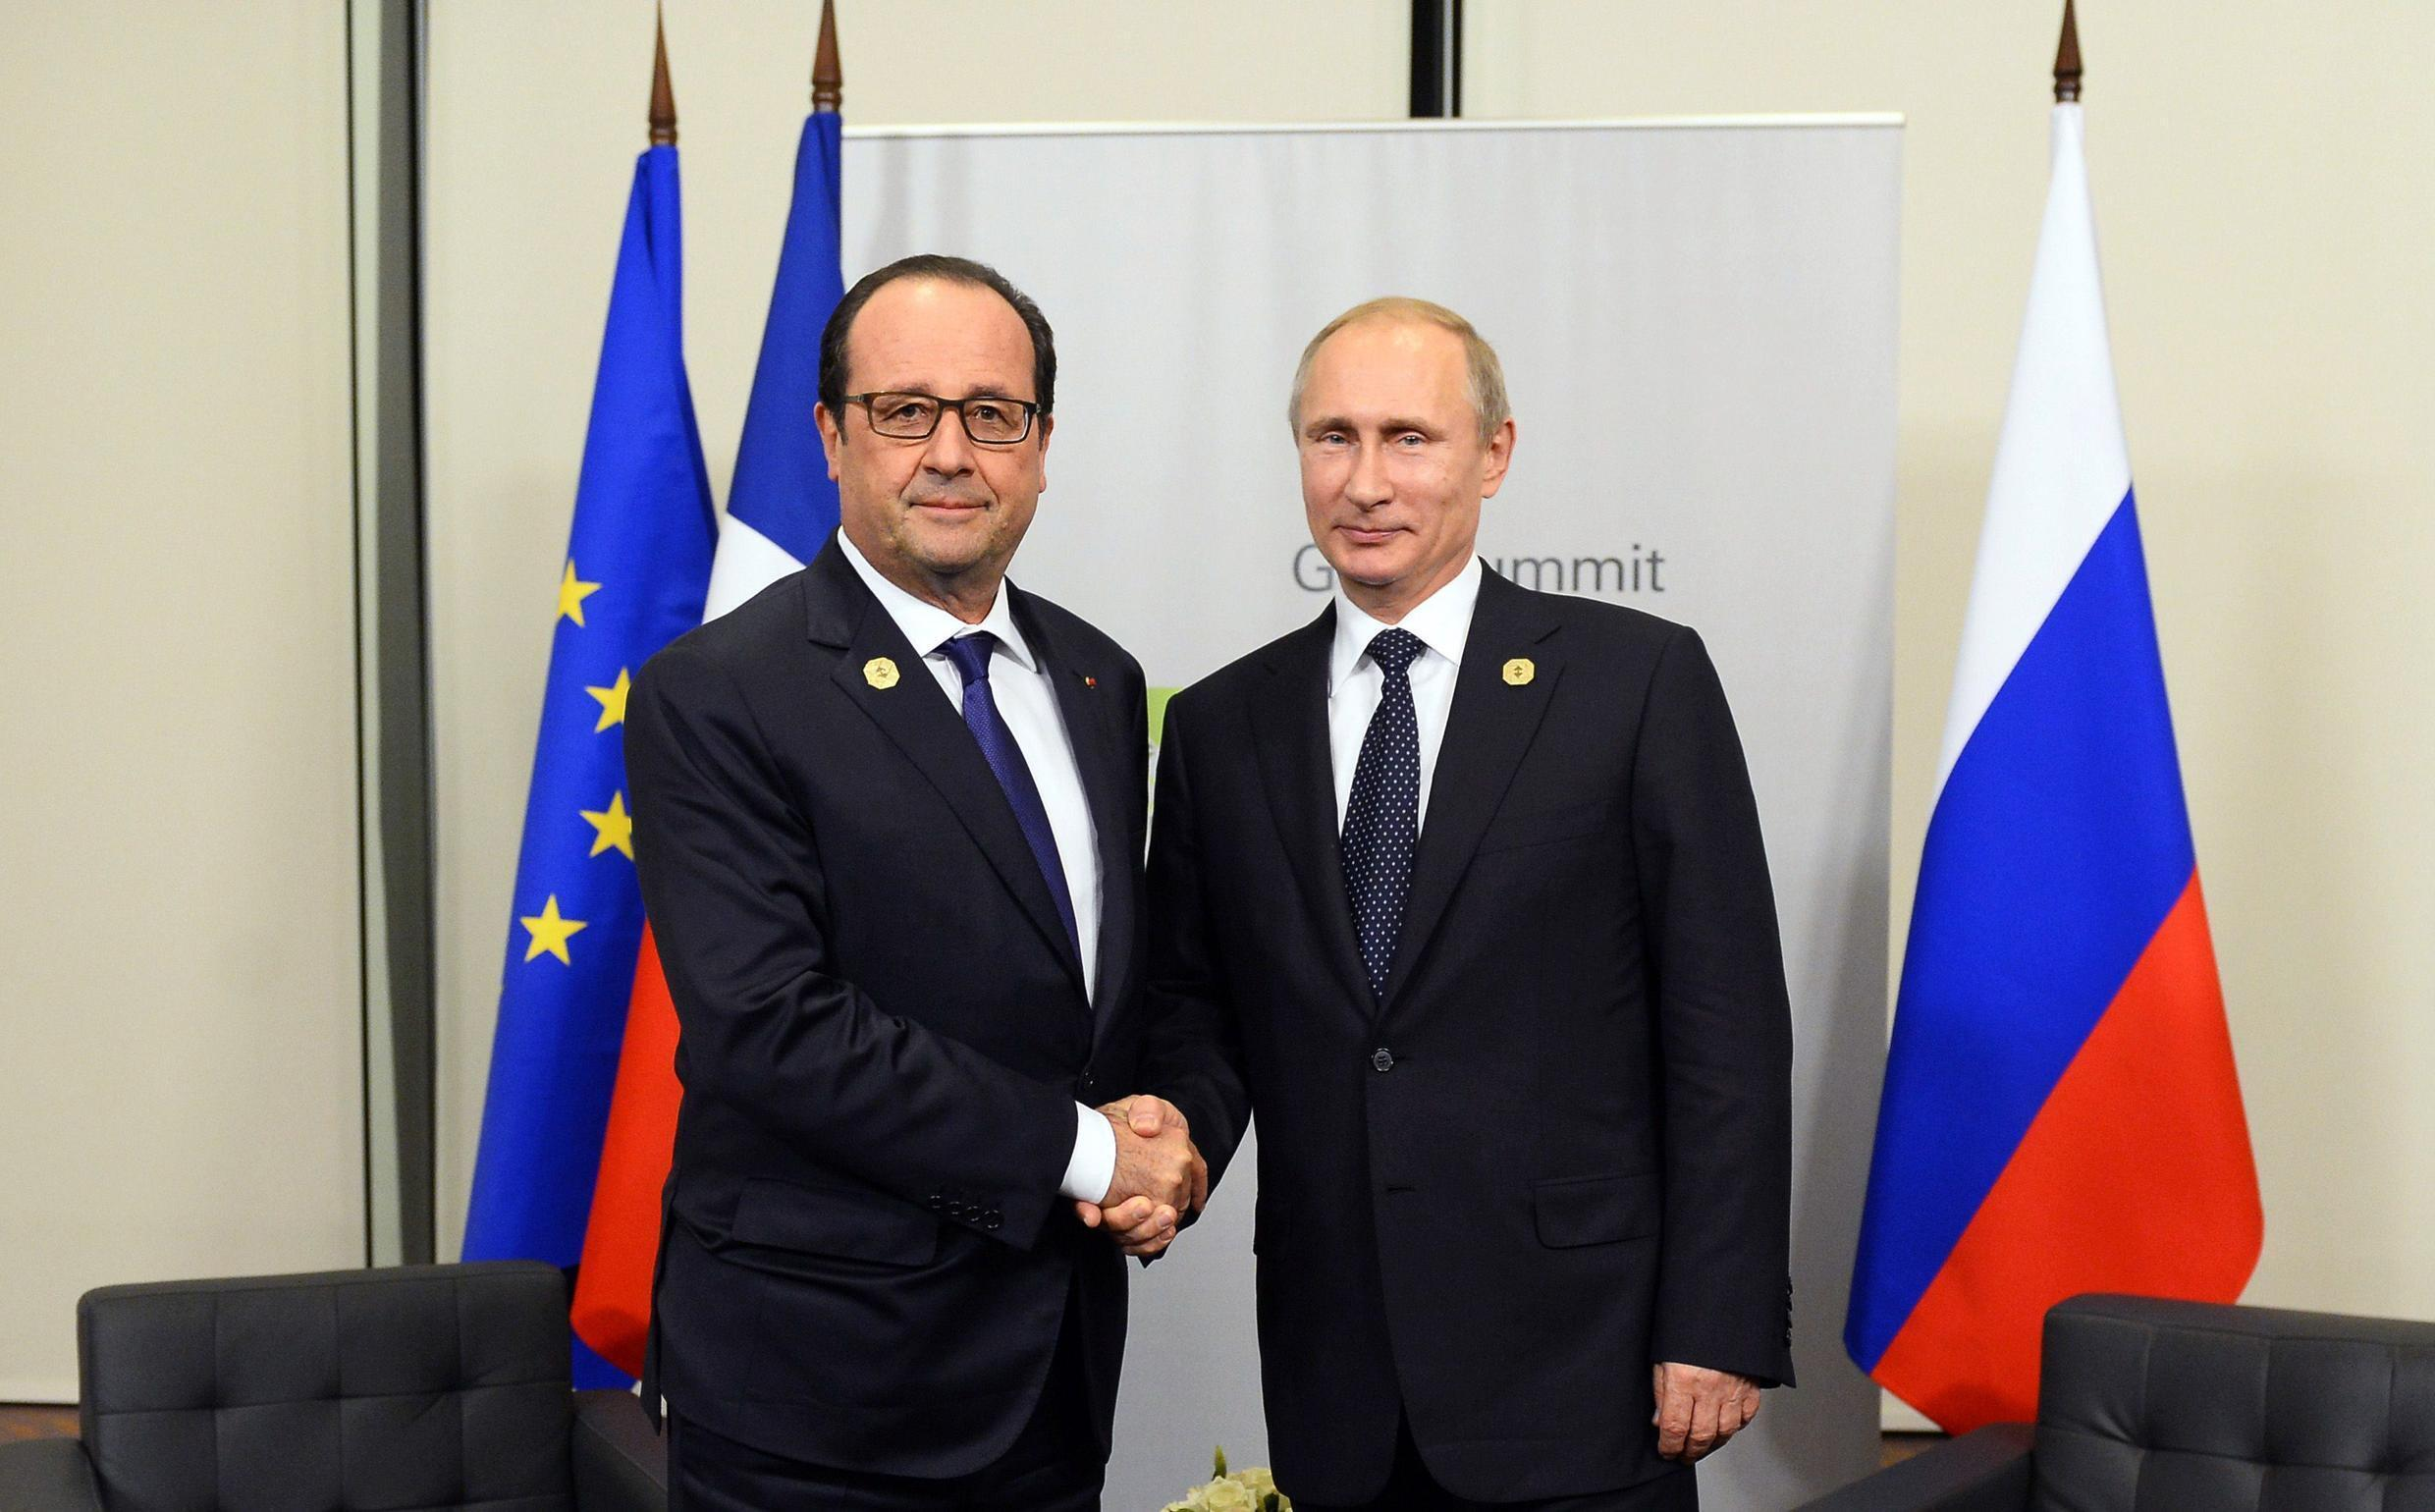 French President François Hollande with Russia's Vladimir Putin at the G20 summit in Brisbane